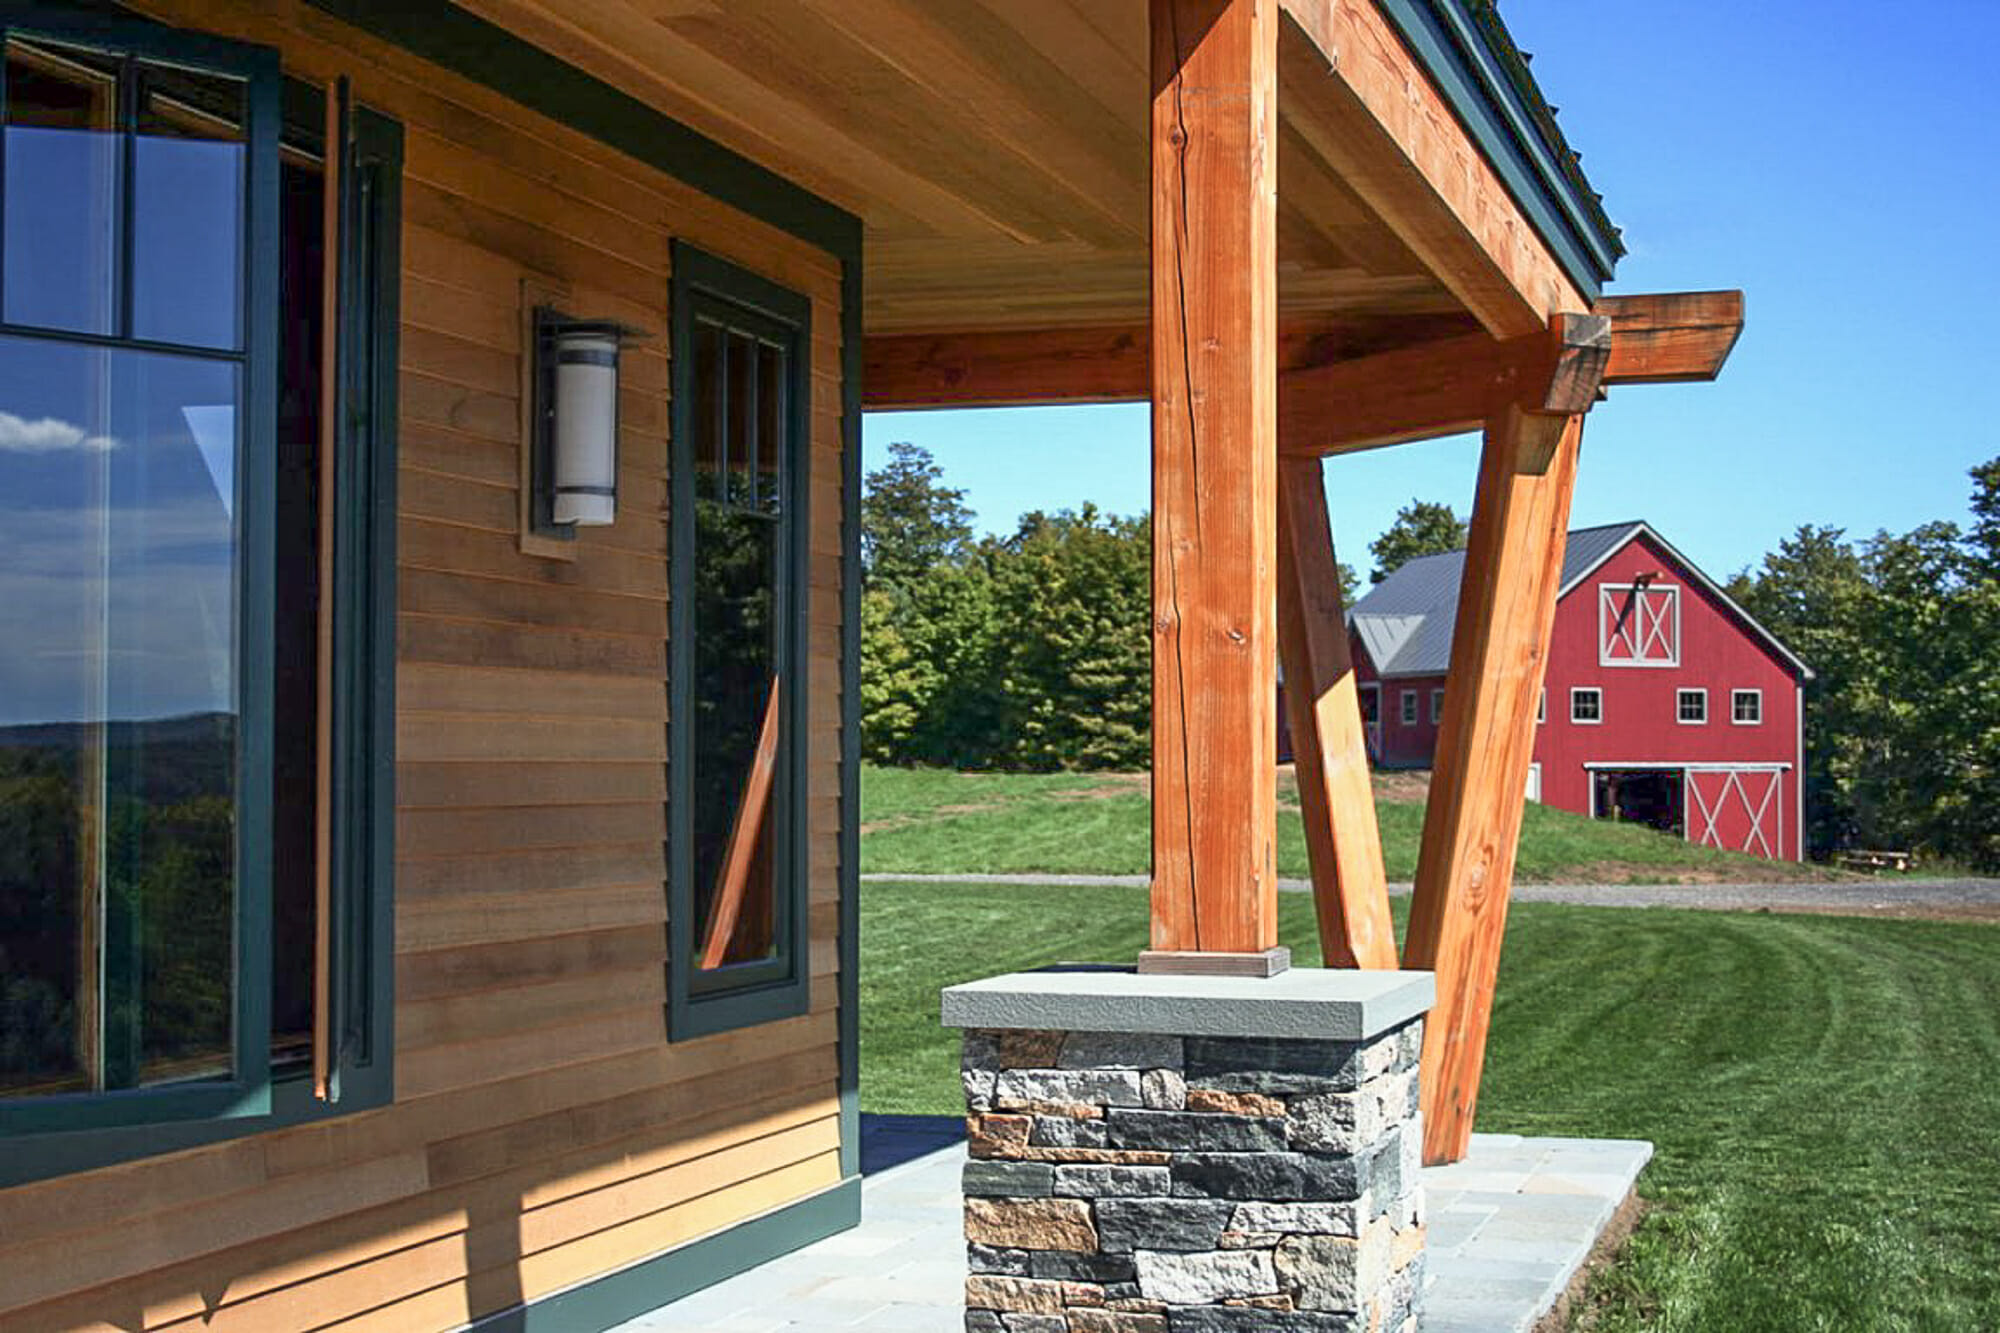 Post Bases for Timber Frames and Post and Beam Buildings on construction house designs, timber frame cottage, timber frame home, timber frame kitchen, timber frame ideas, timber frame landscaping, timber frame additions, timber frame interior design, timber frame lighting, timber frame ceiling, roof house designs, timber frame books, timber frame bathroom, landscaping house designs, timber frame construction, timber home designs, timber frame bedroom, post frame house designs, timber frame furniture, timber frame living room,